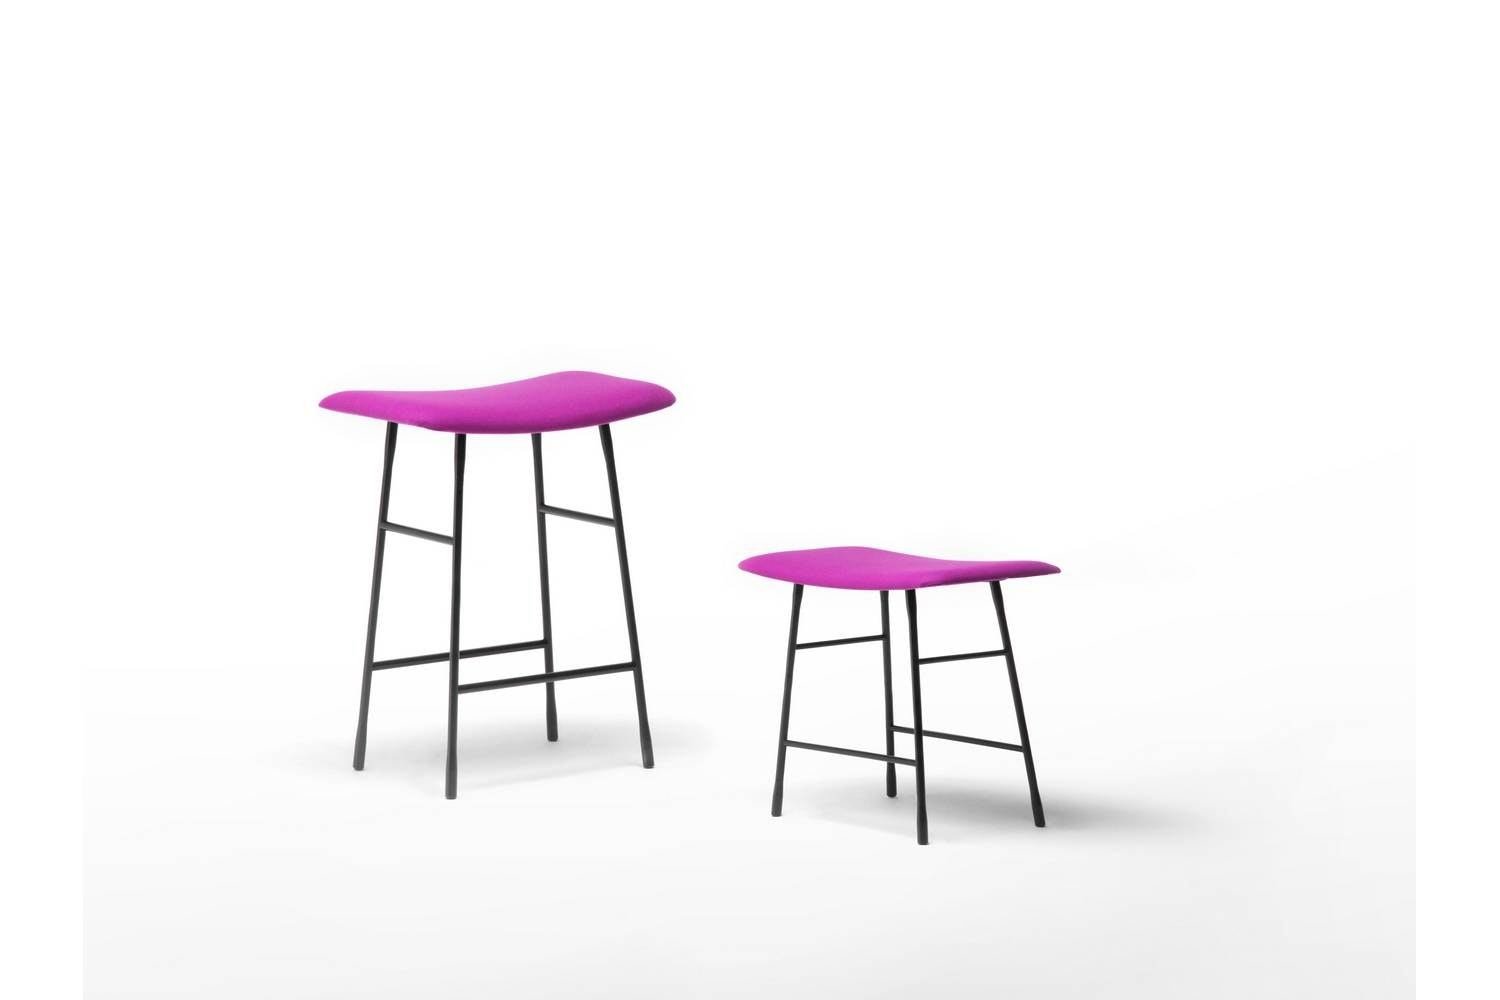 Hinge Stool by Francesco Rota for Living Divani